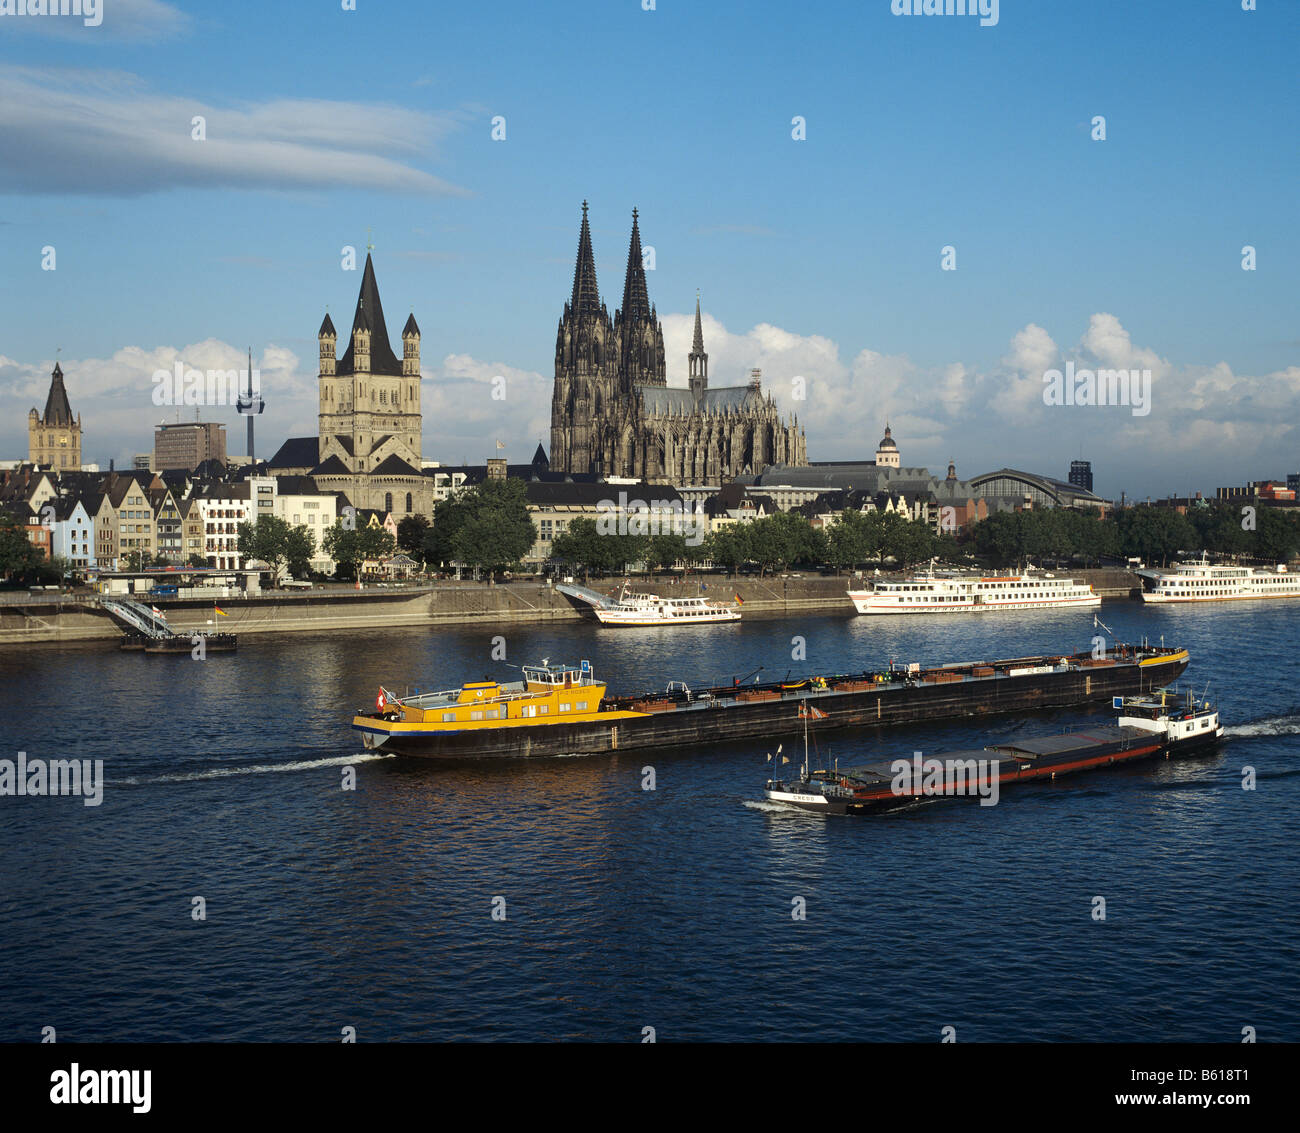 View over the Rhine River to the Cathedral and the Gross St. Martin Church, at front are freight barges and tourists - Stock Image